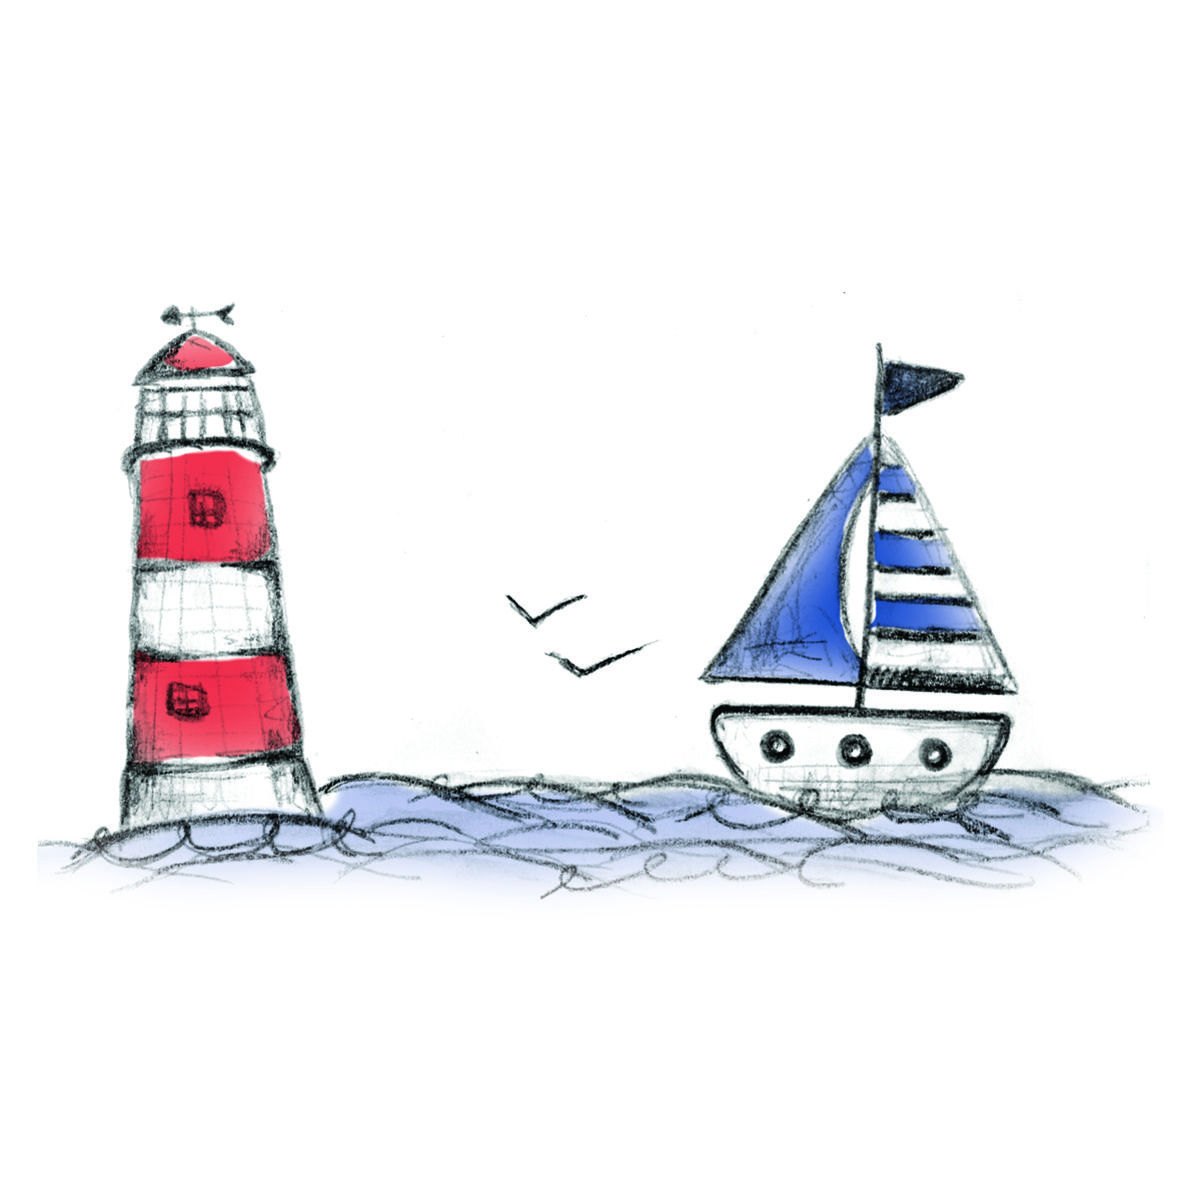 Boat-and-Lighthouse-colour-1200×1200-compressor